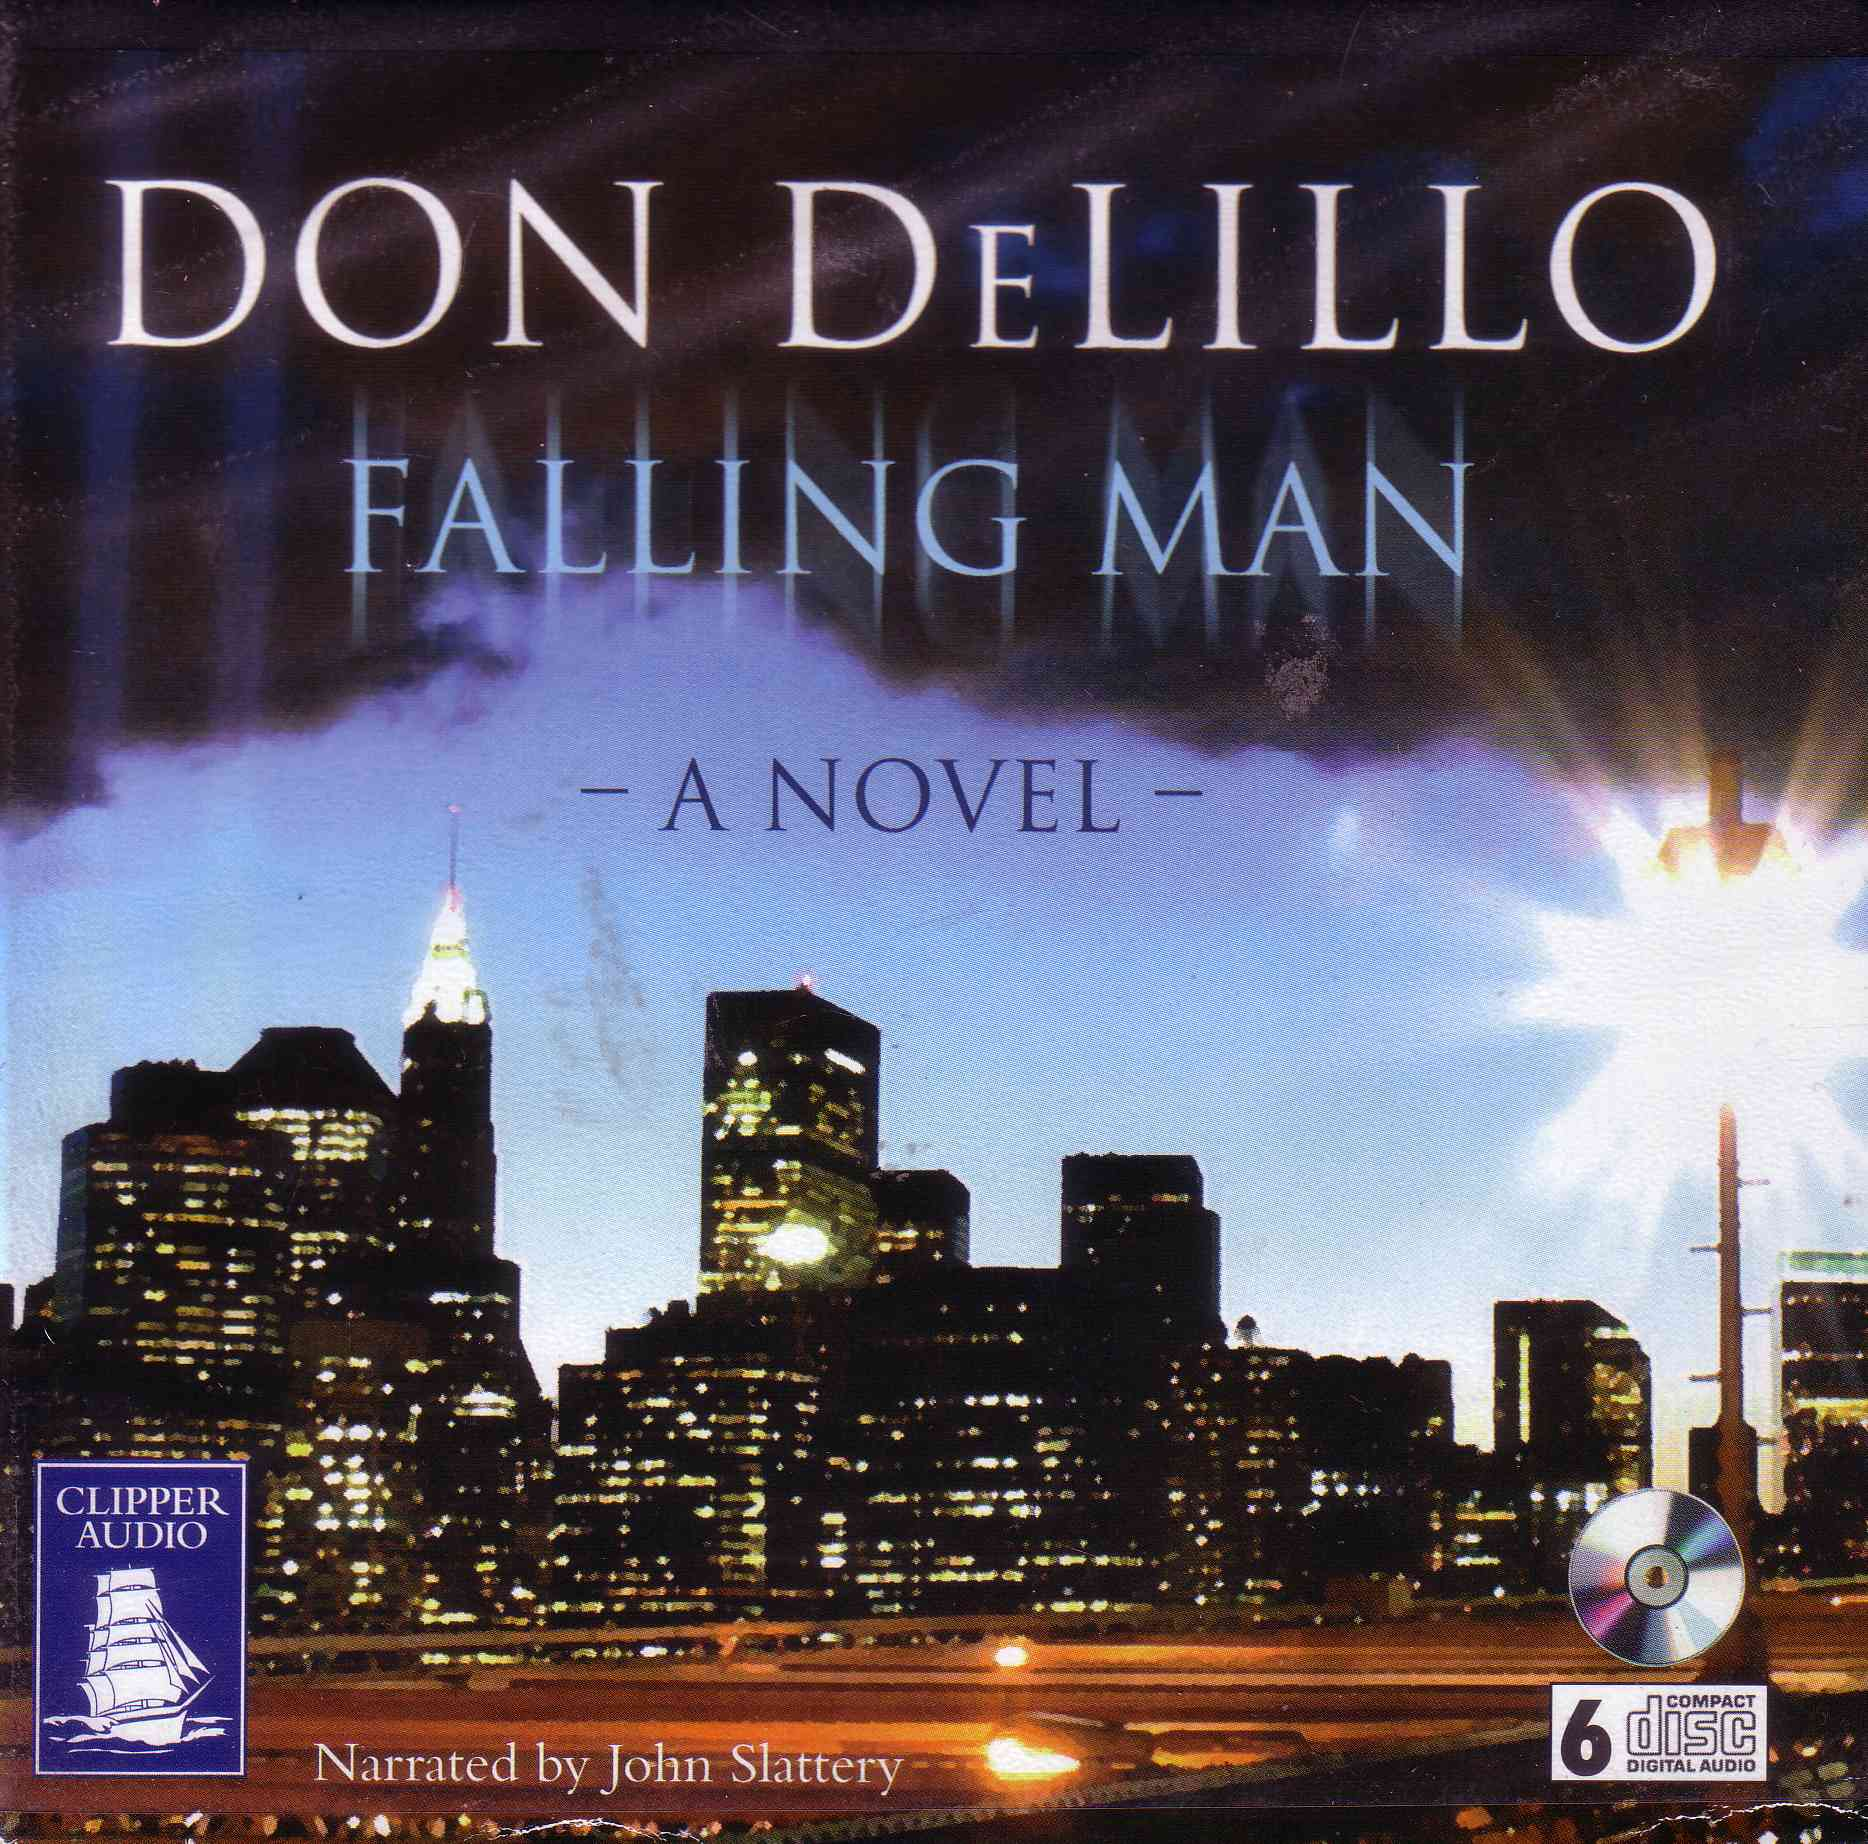 underworld by don delillo essay Don delillo did 9/11 by malcolm harris july 6  is the longest he's taken since his 1997 masterpiece underworld  i don't think delillo has lost his talent.